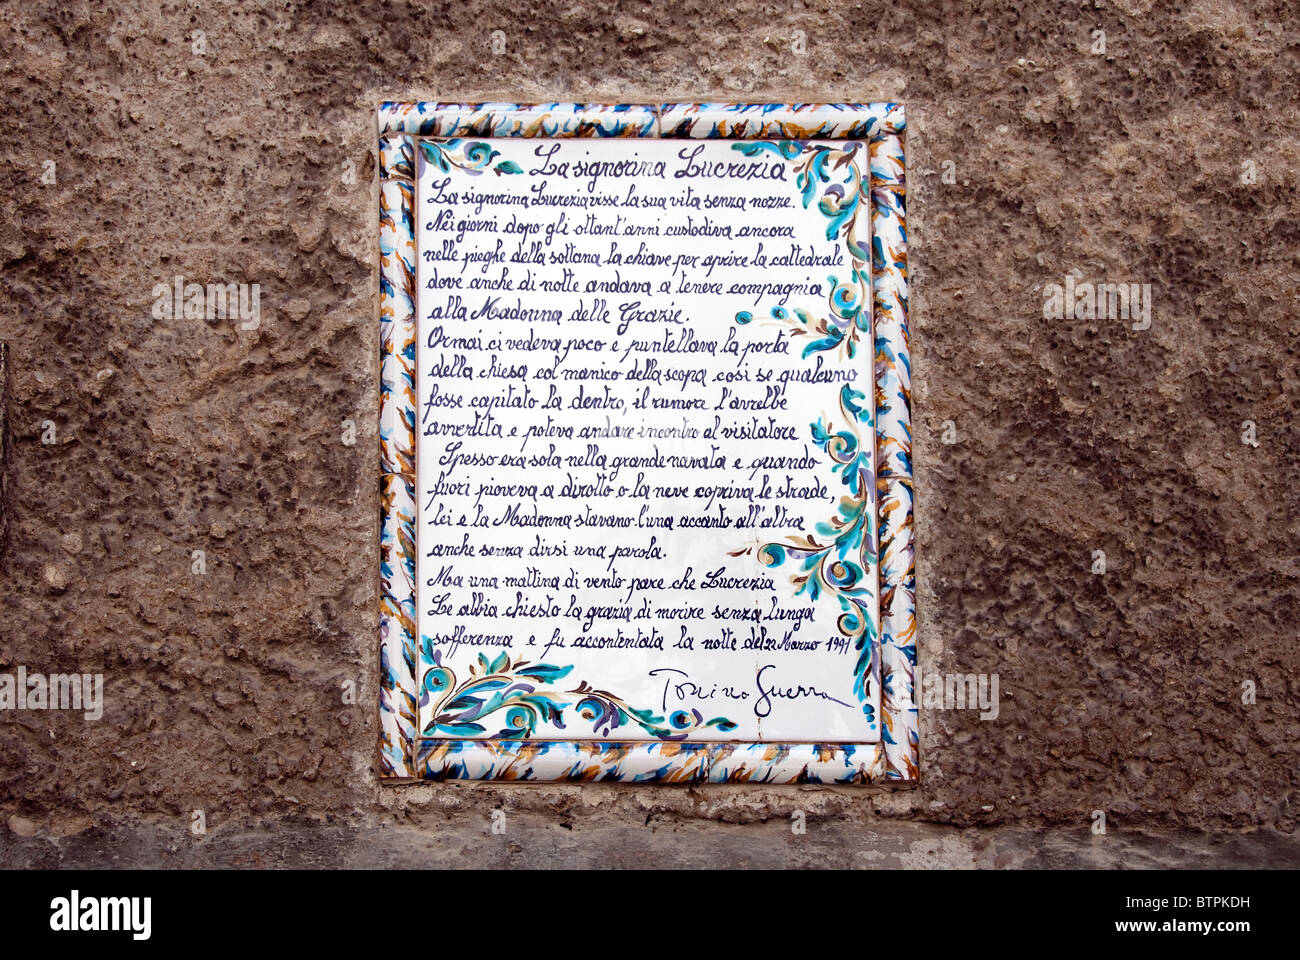 Poetry in a majolica wall tile Pennabilli, Emilia Romagna, Italy - Stock Image